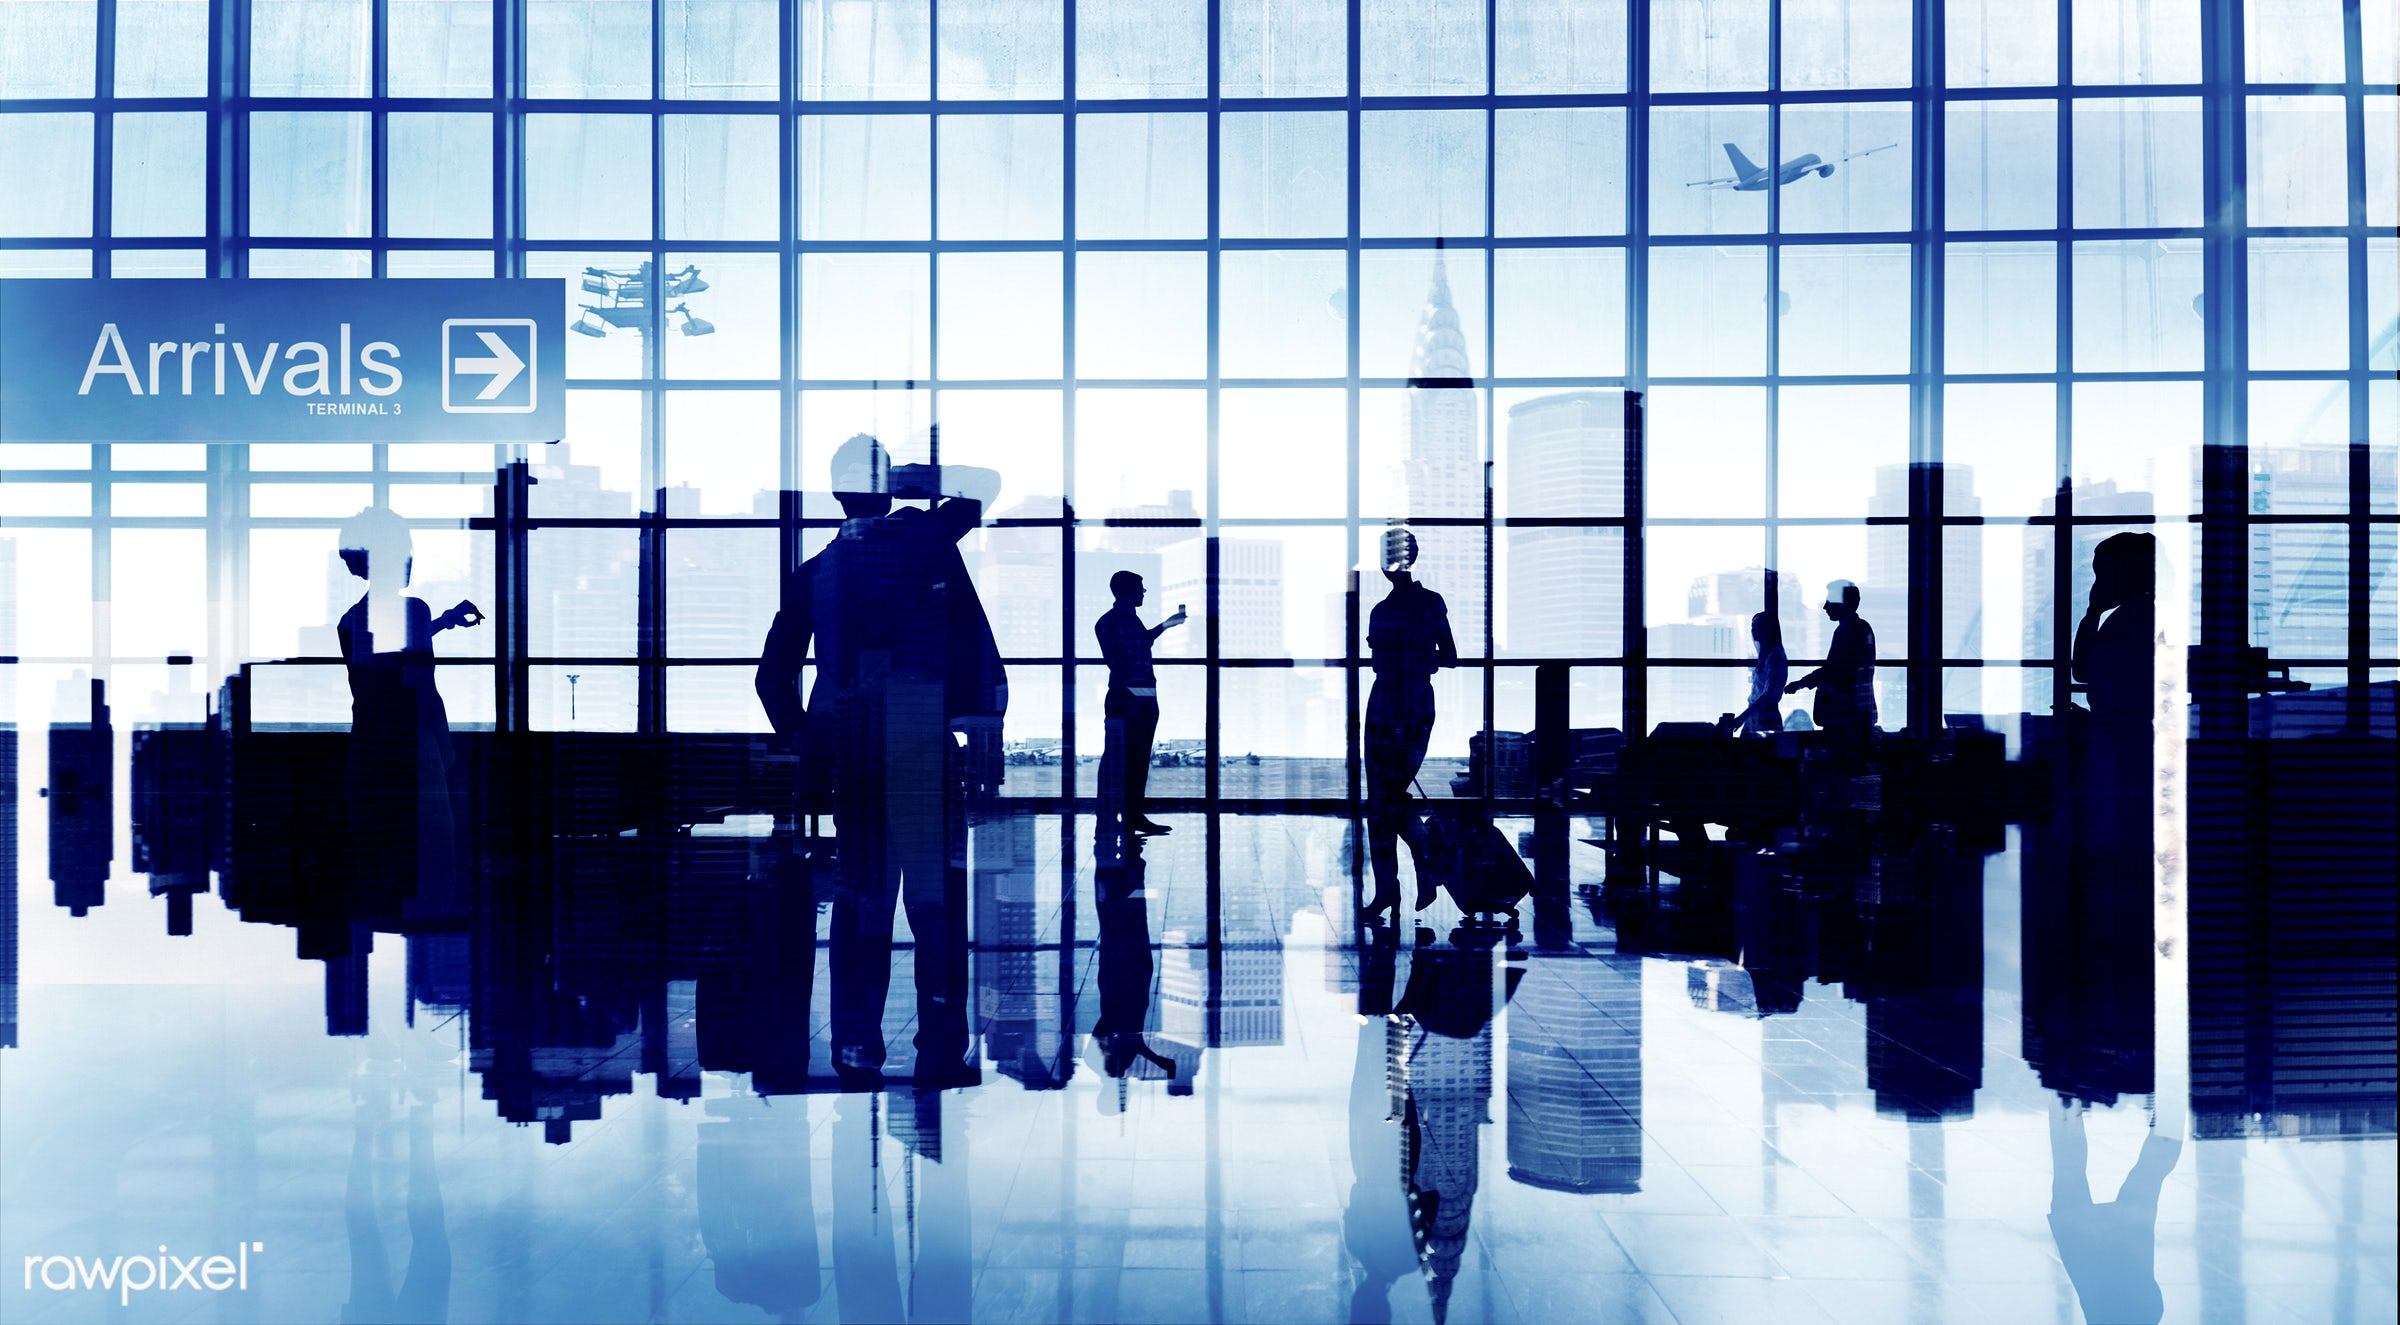 aircraft, airplane, airport, business, business people, business travel, business trip, businessmen, businesswomen, busy,...